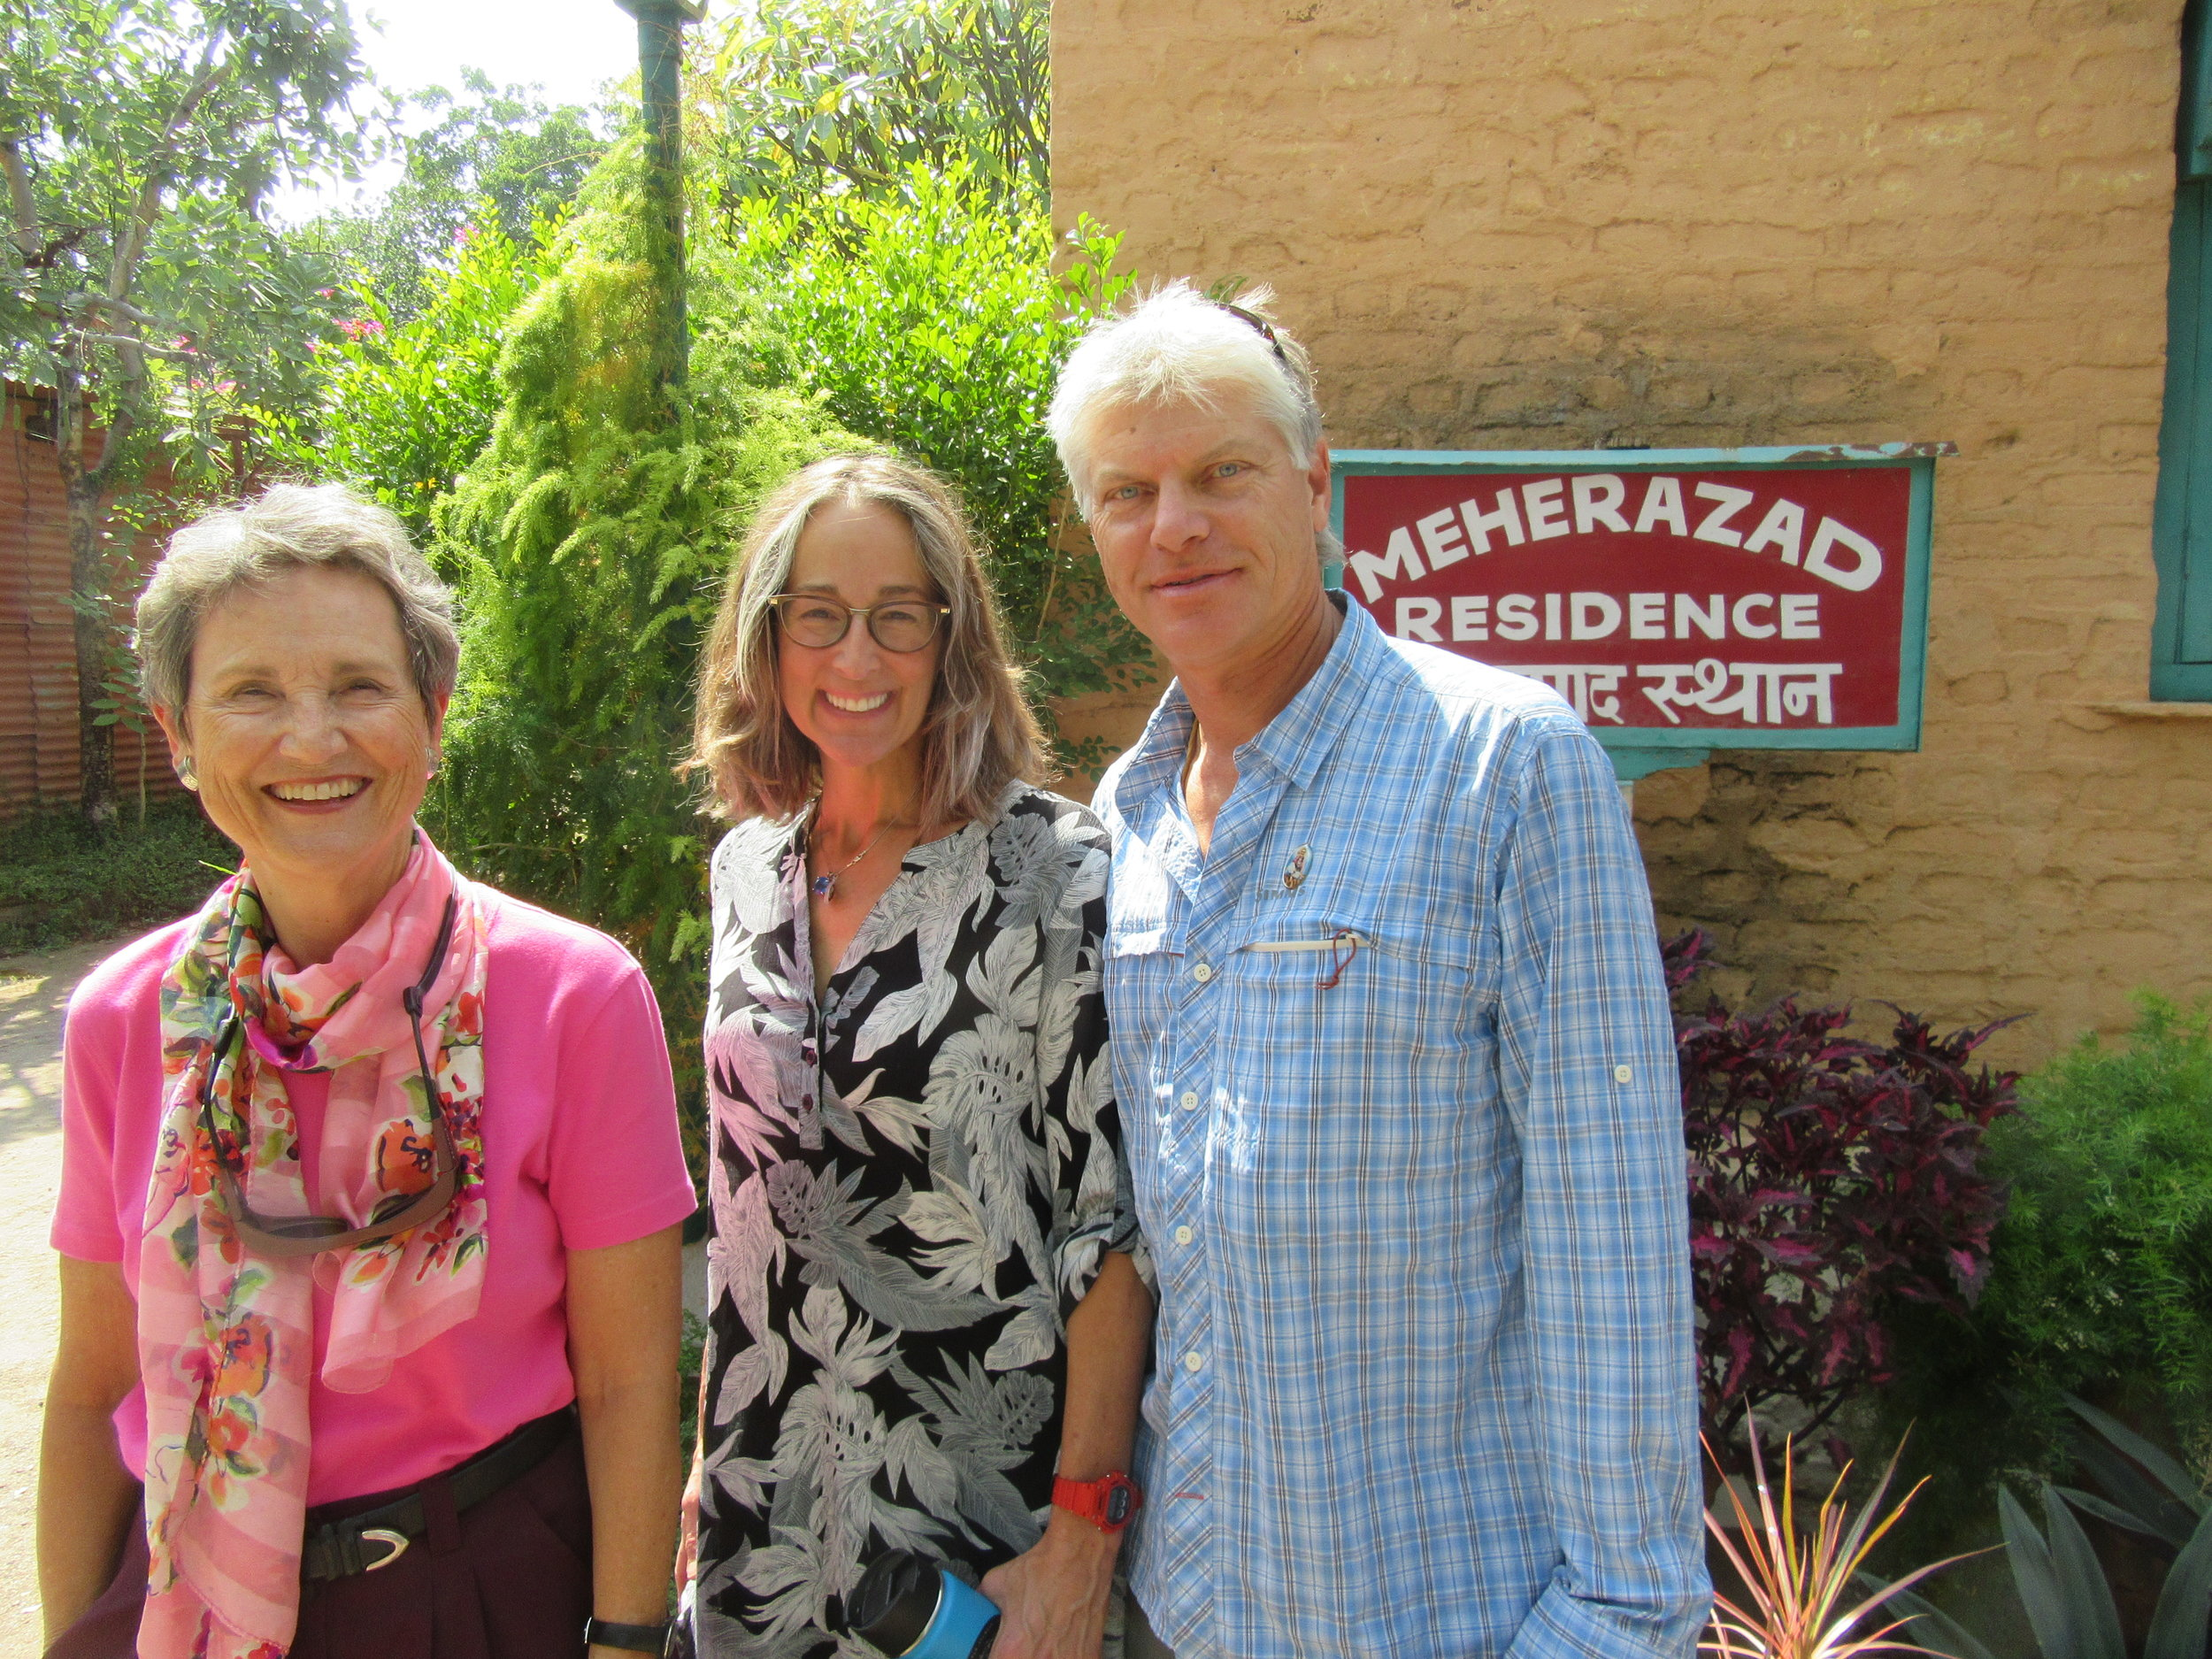 CARETAKER RECRUITMENT IN INDIA. Margaret Magnus and Sam Ervin (not pictured) met Ellen Kwiatkowski and Eric Carlson in India in October 2018 and encouraged them to consider being caretakers at Meher Mount. Ellen and Eric visited in January 2019, said yes months later, and arrived at Meher Mount by the end of June 2019. (Photo: Sam Ervin, October 2018)